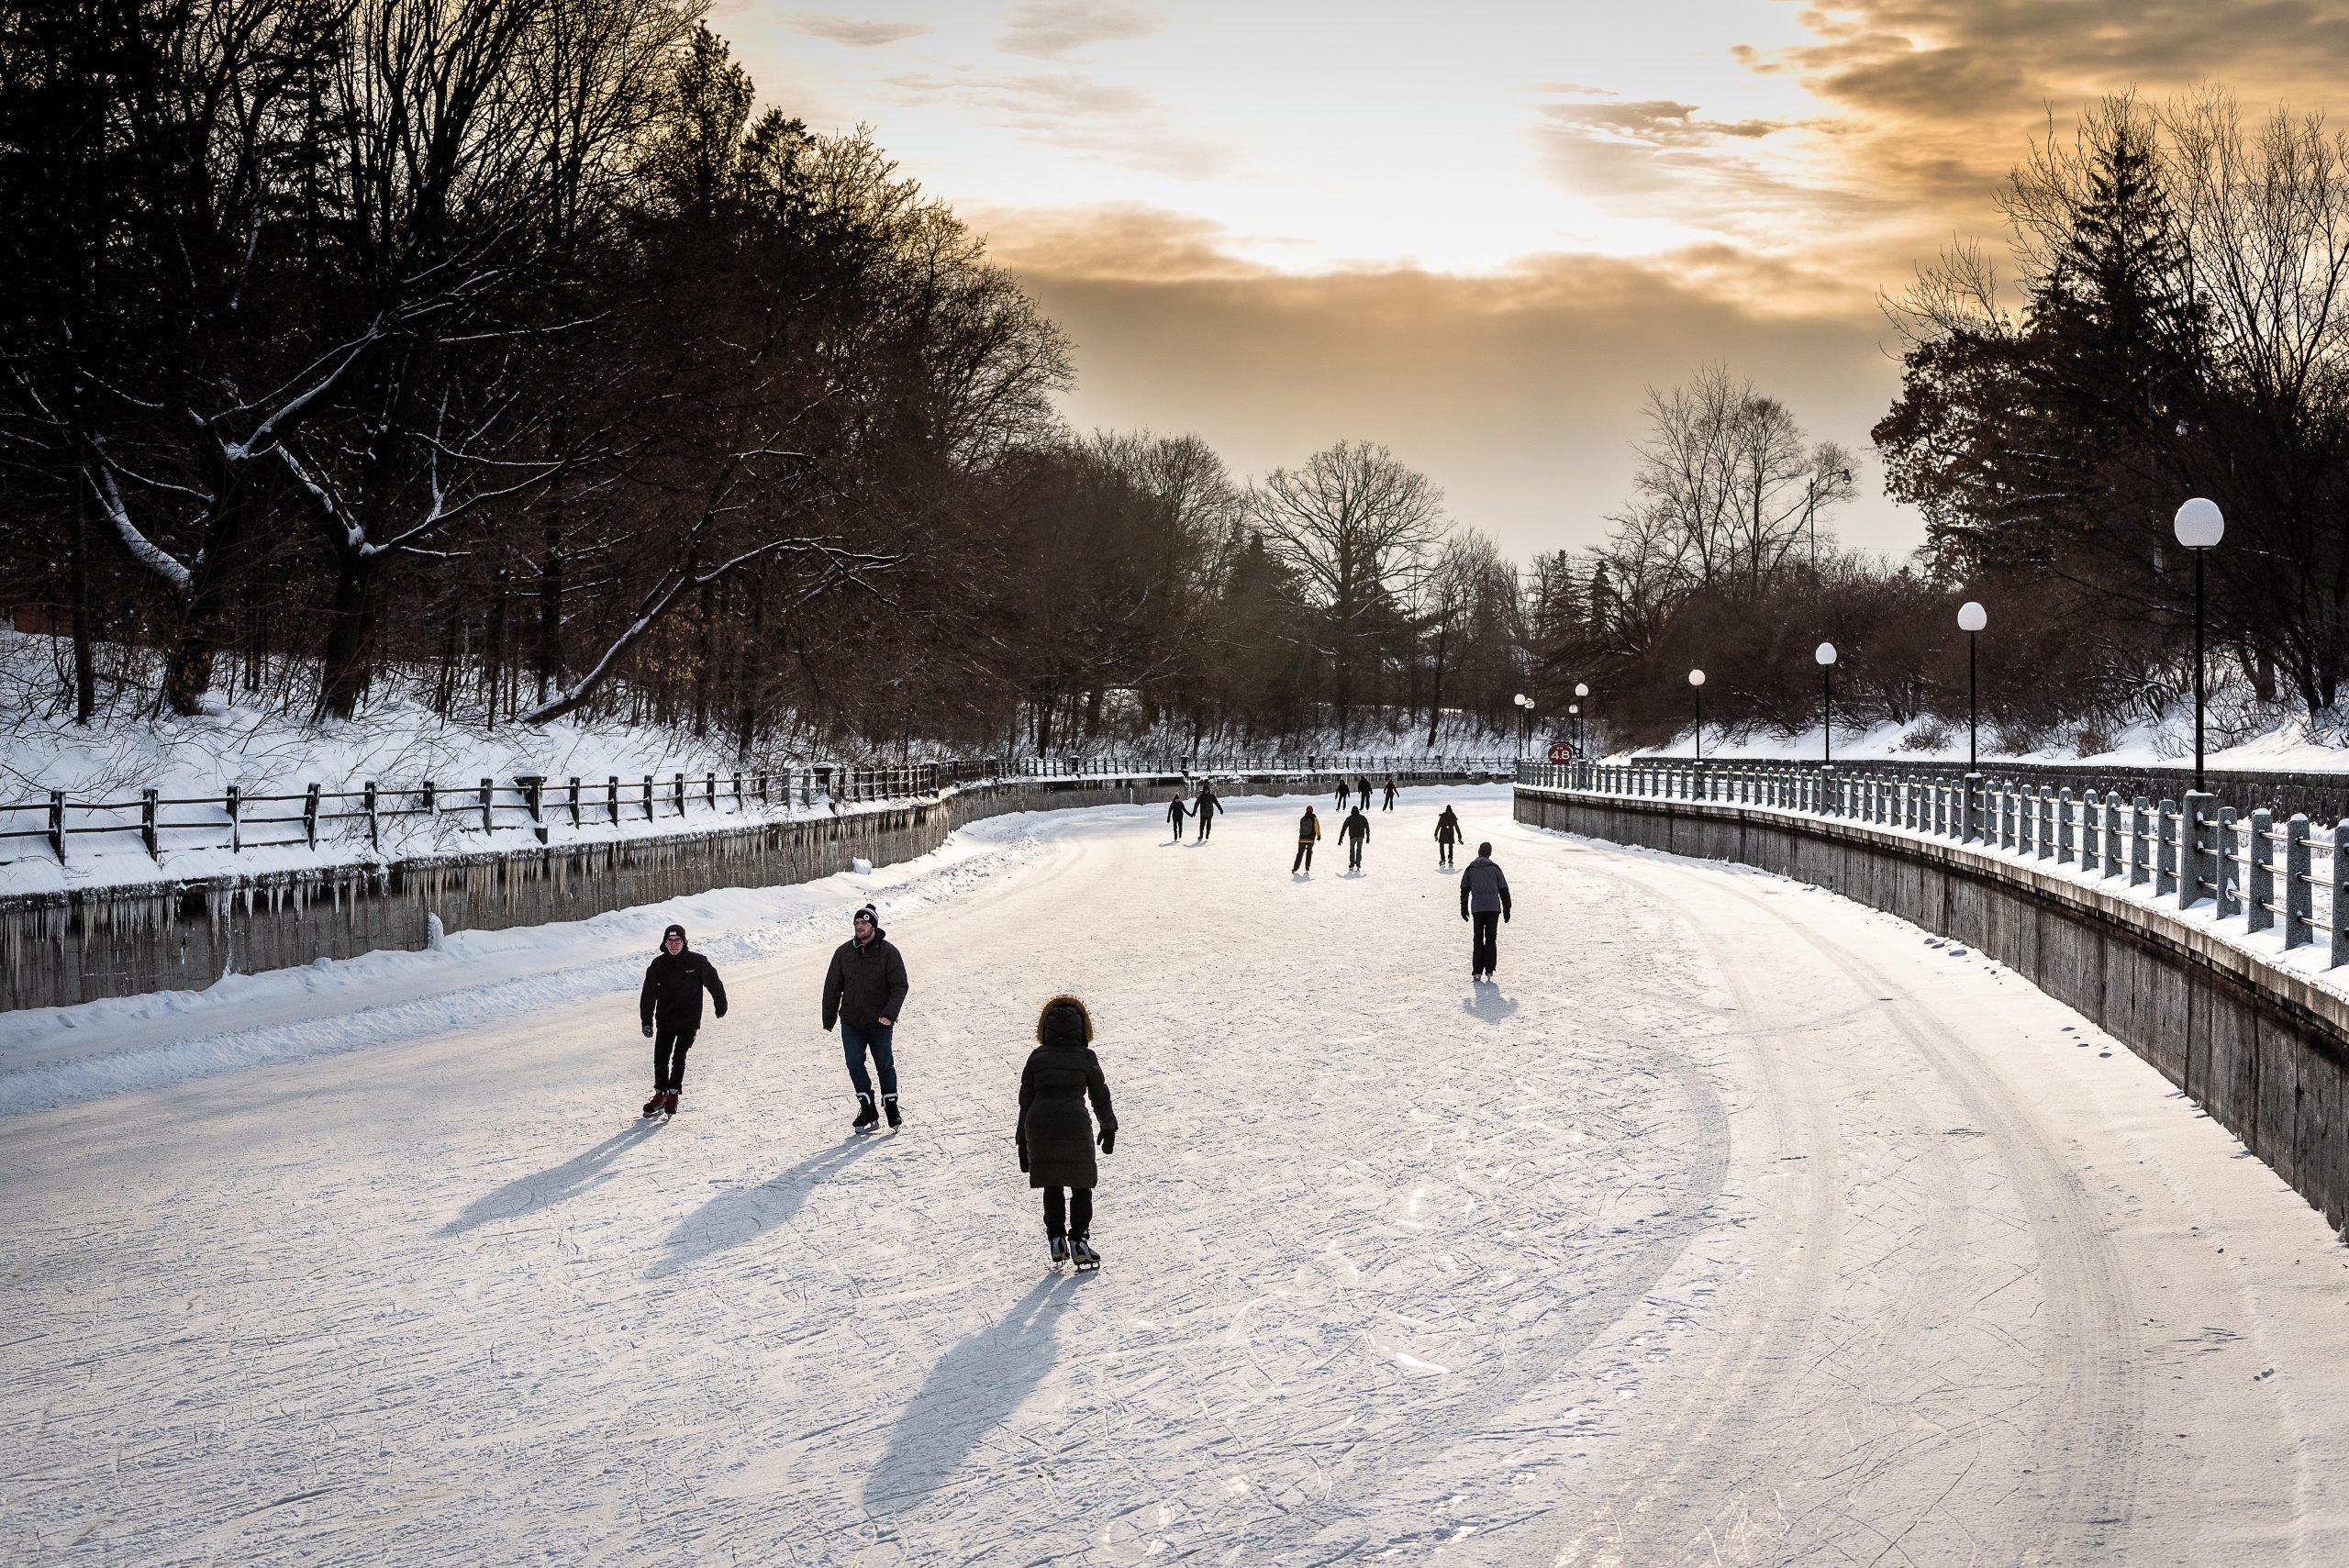 A flurry of outdoor fun in Canada's capital